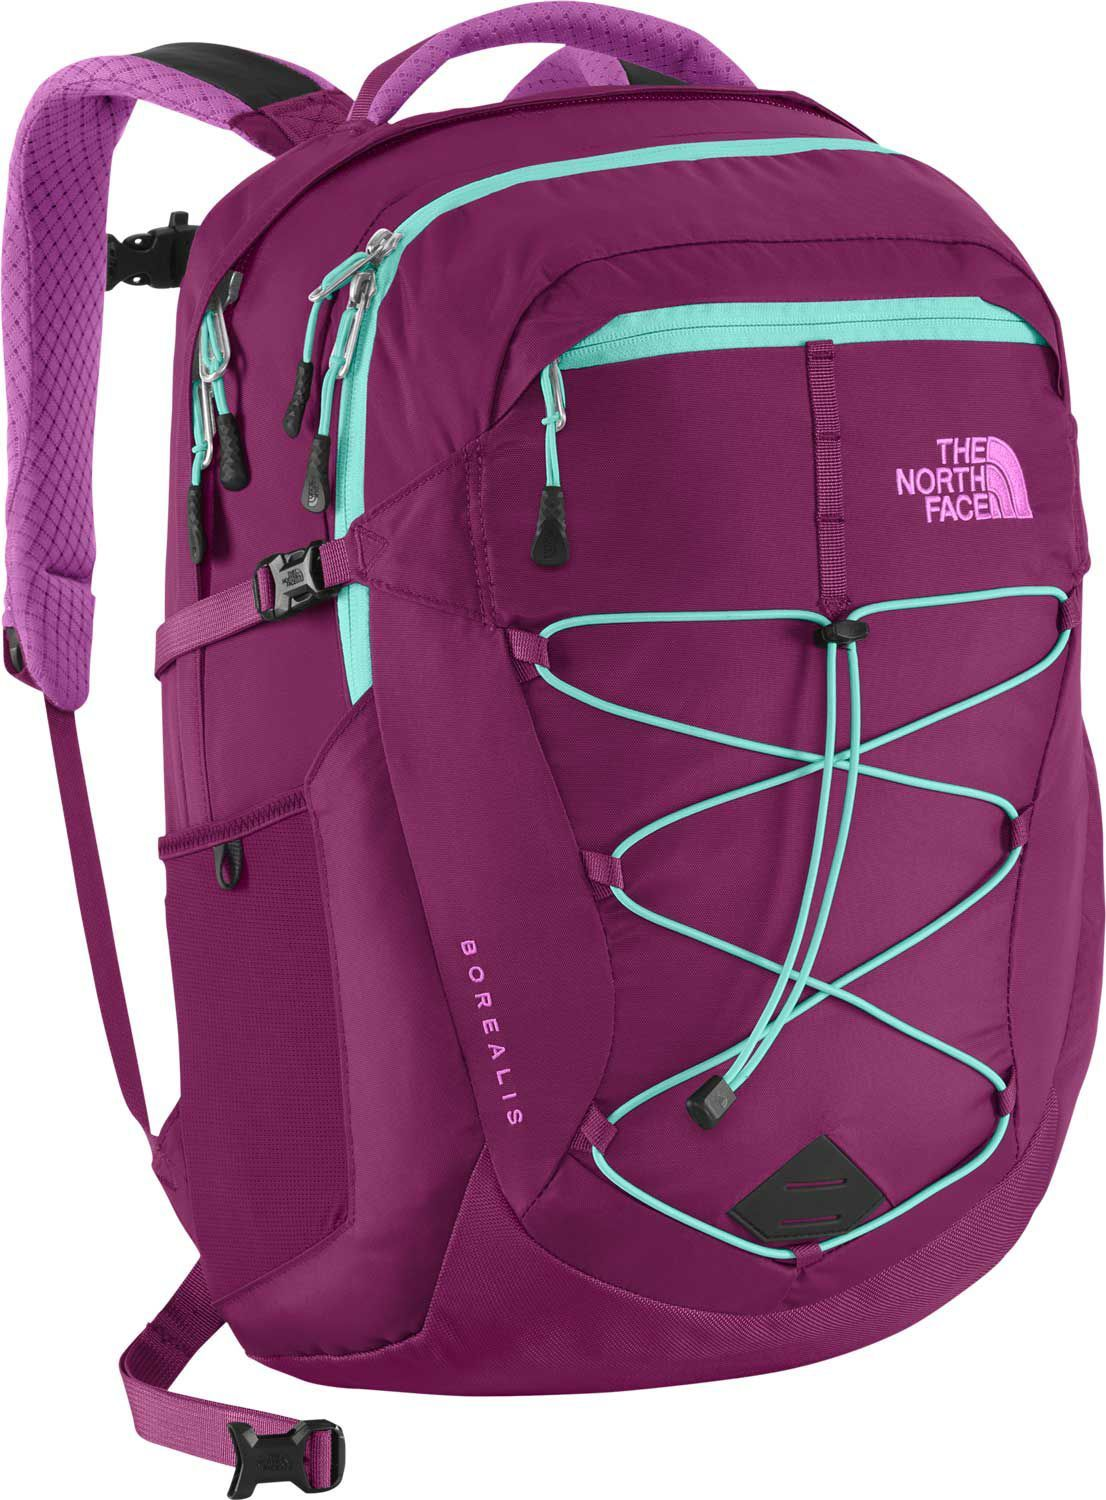 9e67c8c84 The North Face Women's Borealis Backpack in 2019 | Products ...